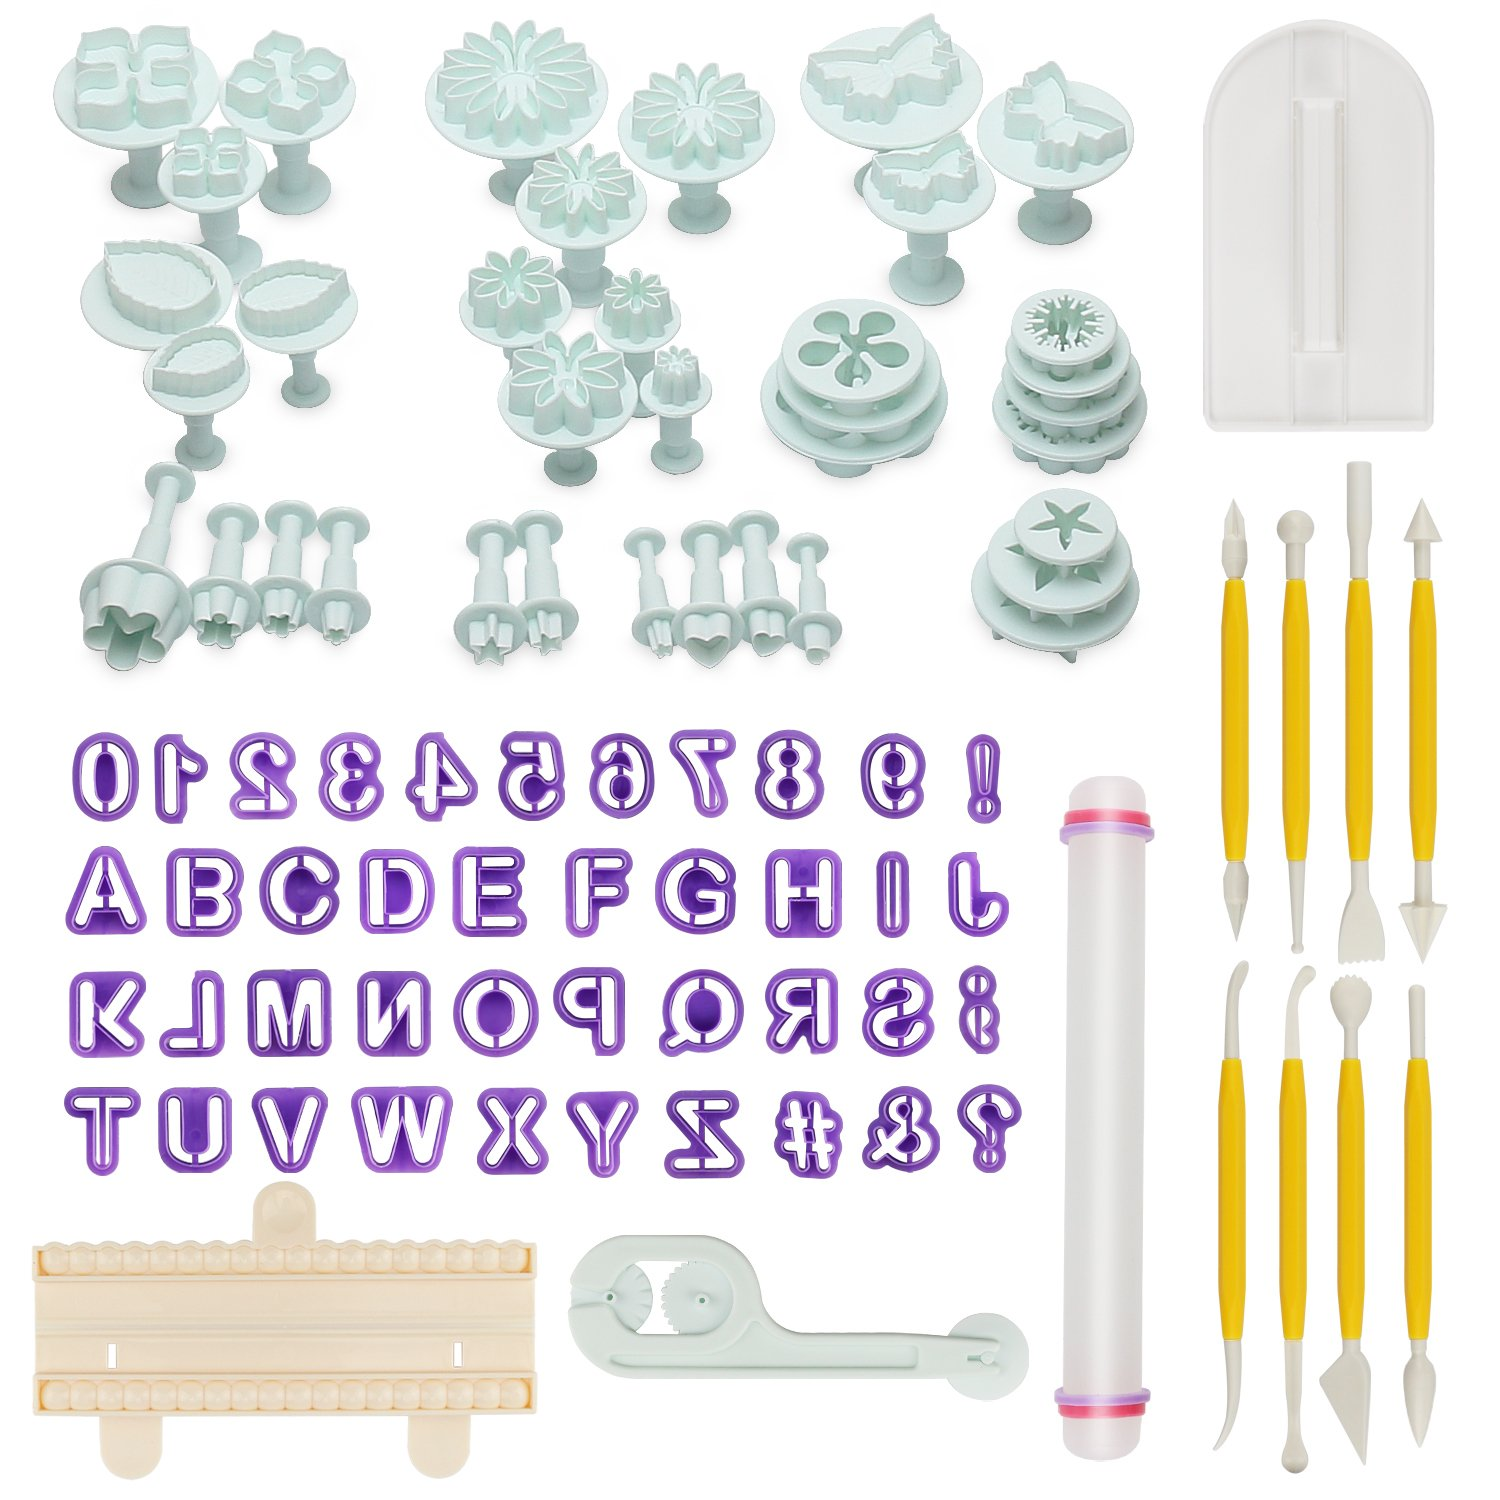 AOAFUN 88 pcs Cake Decorating Tools Fondant Icing Cutters Sugarcraft Tools Kit Plunger Cutters Rose Flower Leaf Moulds Set Cup Cake Icing Smoother Rolling Pin Equipment Accessories AFAT007